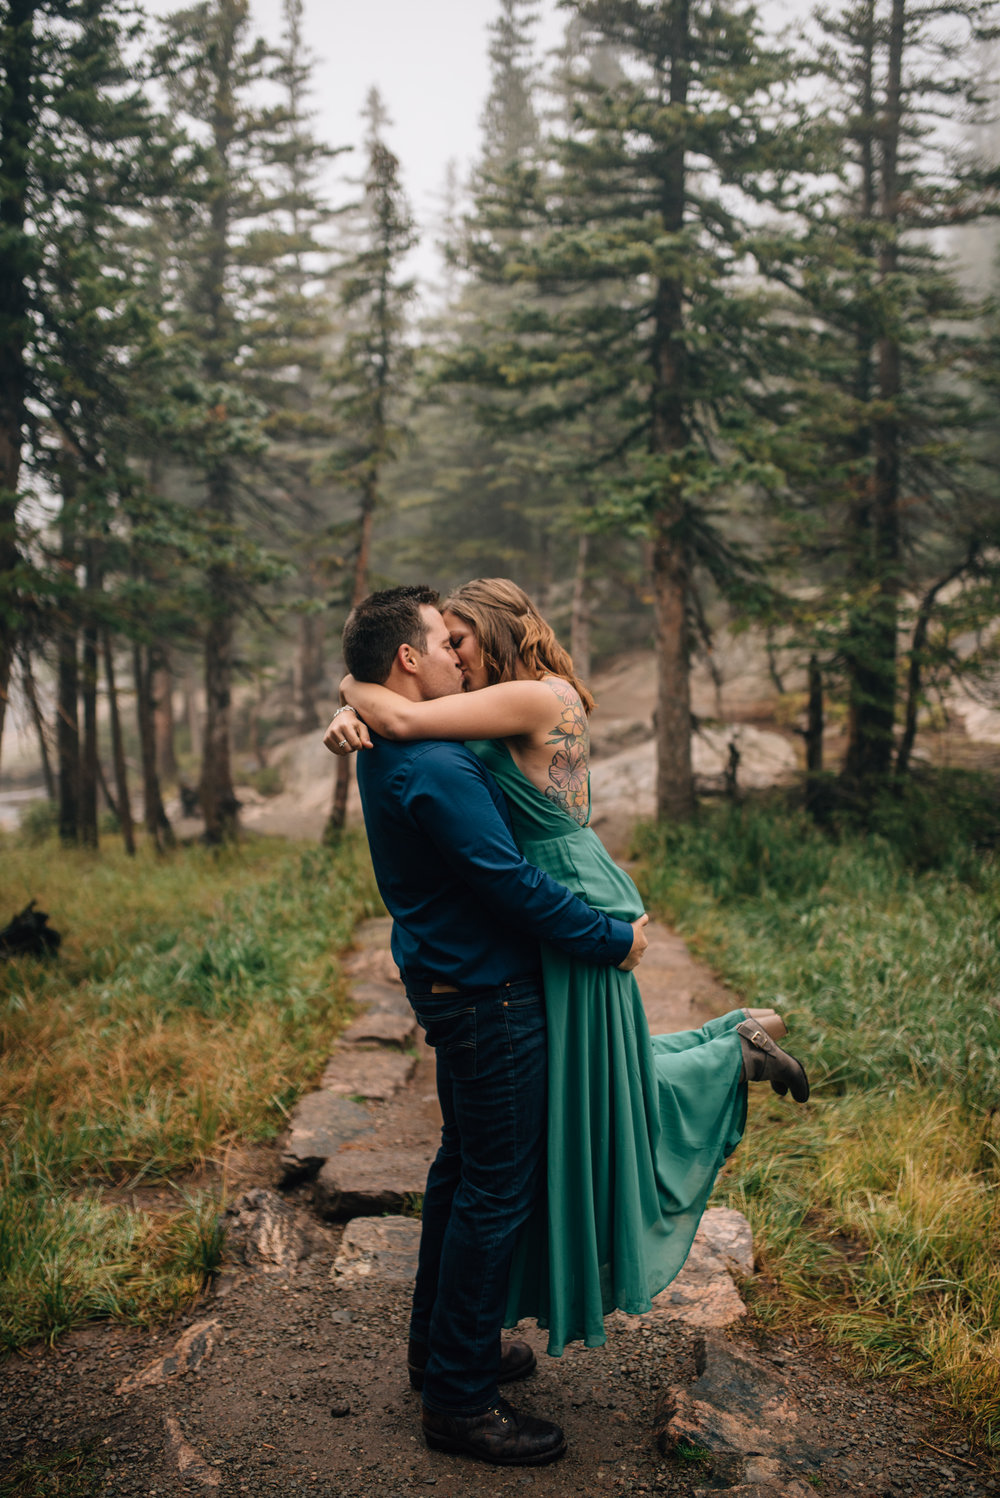 Denver, Colorado wedding photographer. Rocky Mountain National Park elopement photographer.